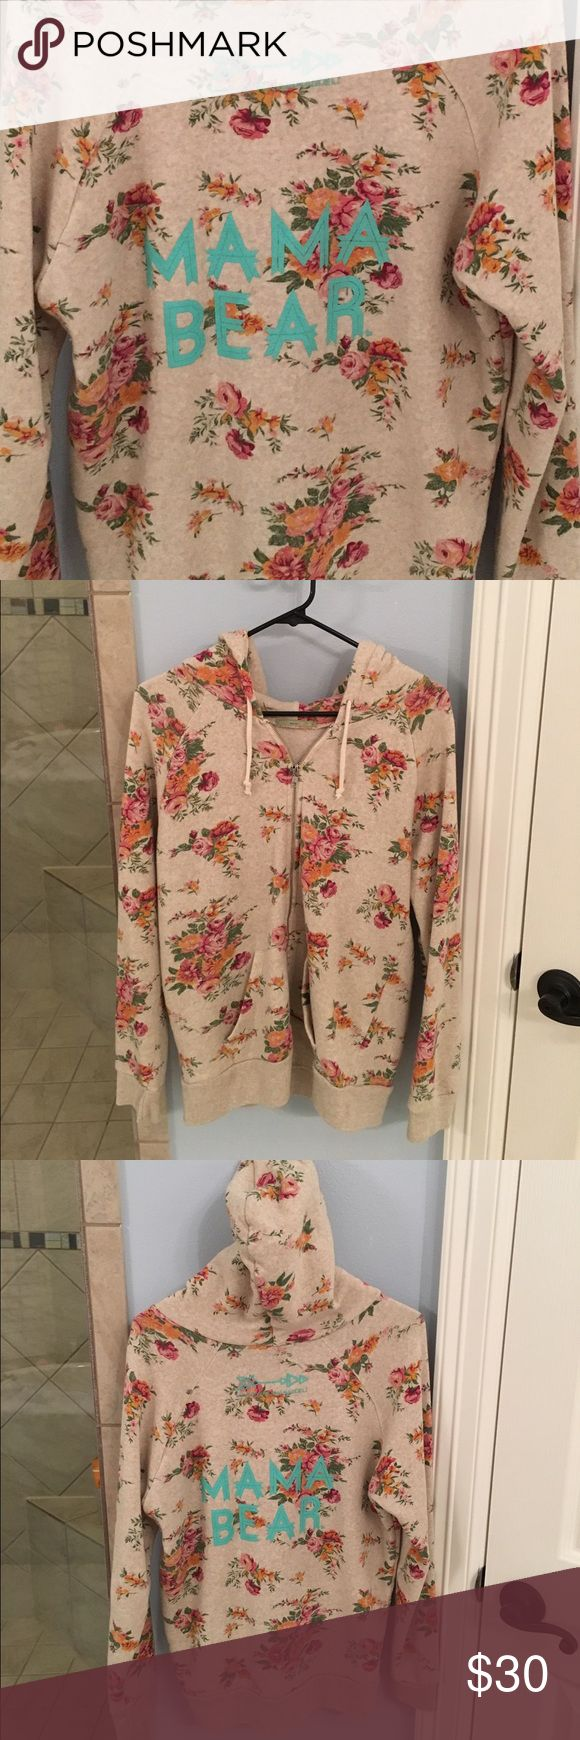 MAMA BEAR floral zip up hoodie *Loved by Hannah and Eli* collection. In great used condition. Signs of light wear only, no stains or tears. Floral zip hoodie with Mama Bear logo in turquoise on the back Loved by Hannah and Eli Tops Sweatshirts & Hoodies